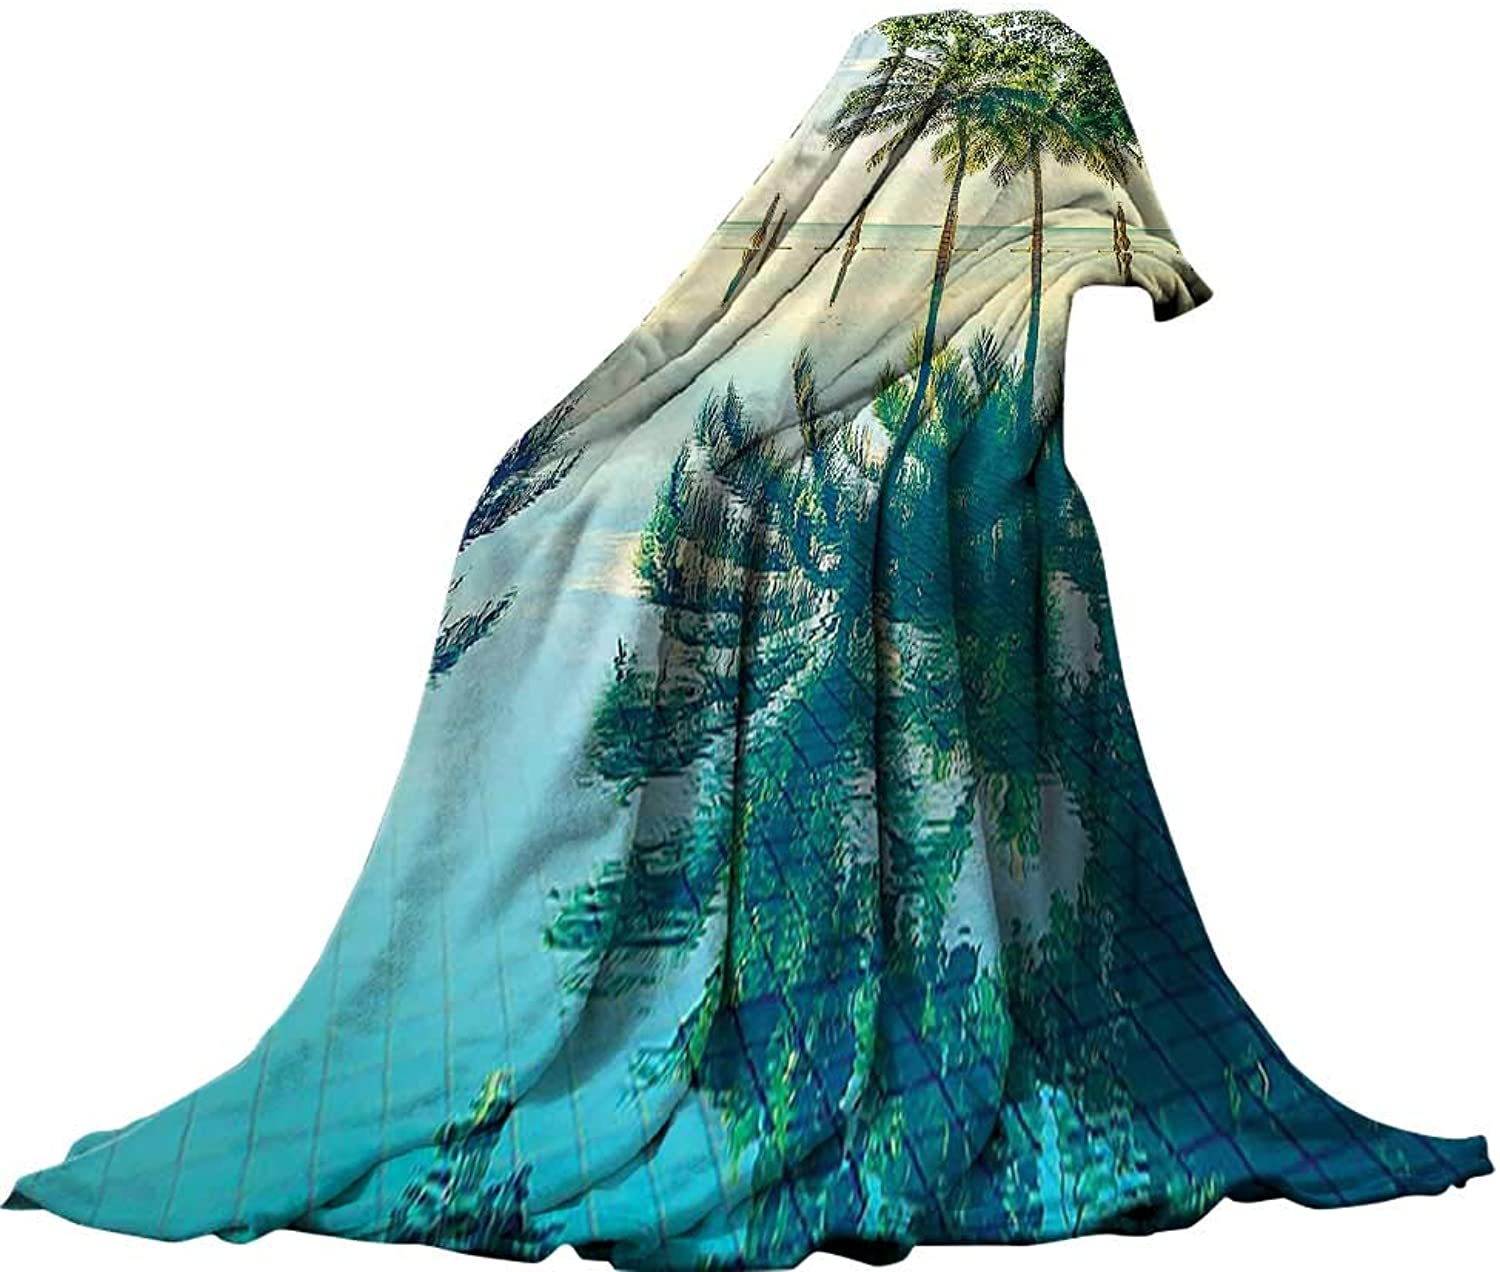 QINYAN-Home Decorative Throw Blanket Painted (62 x60 ) Summer Quilt Comforter House Decor Pool with Tree Silhouettes On The Surface No Filter Region Hot Spot Climate On Earth Decor Green bluee.